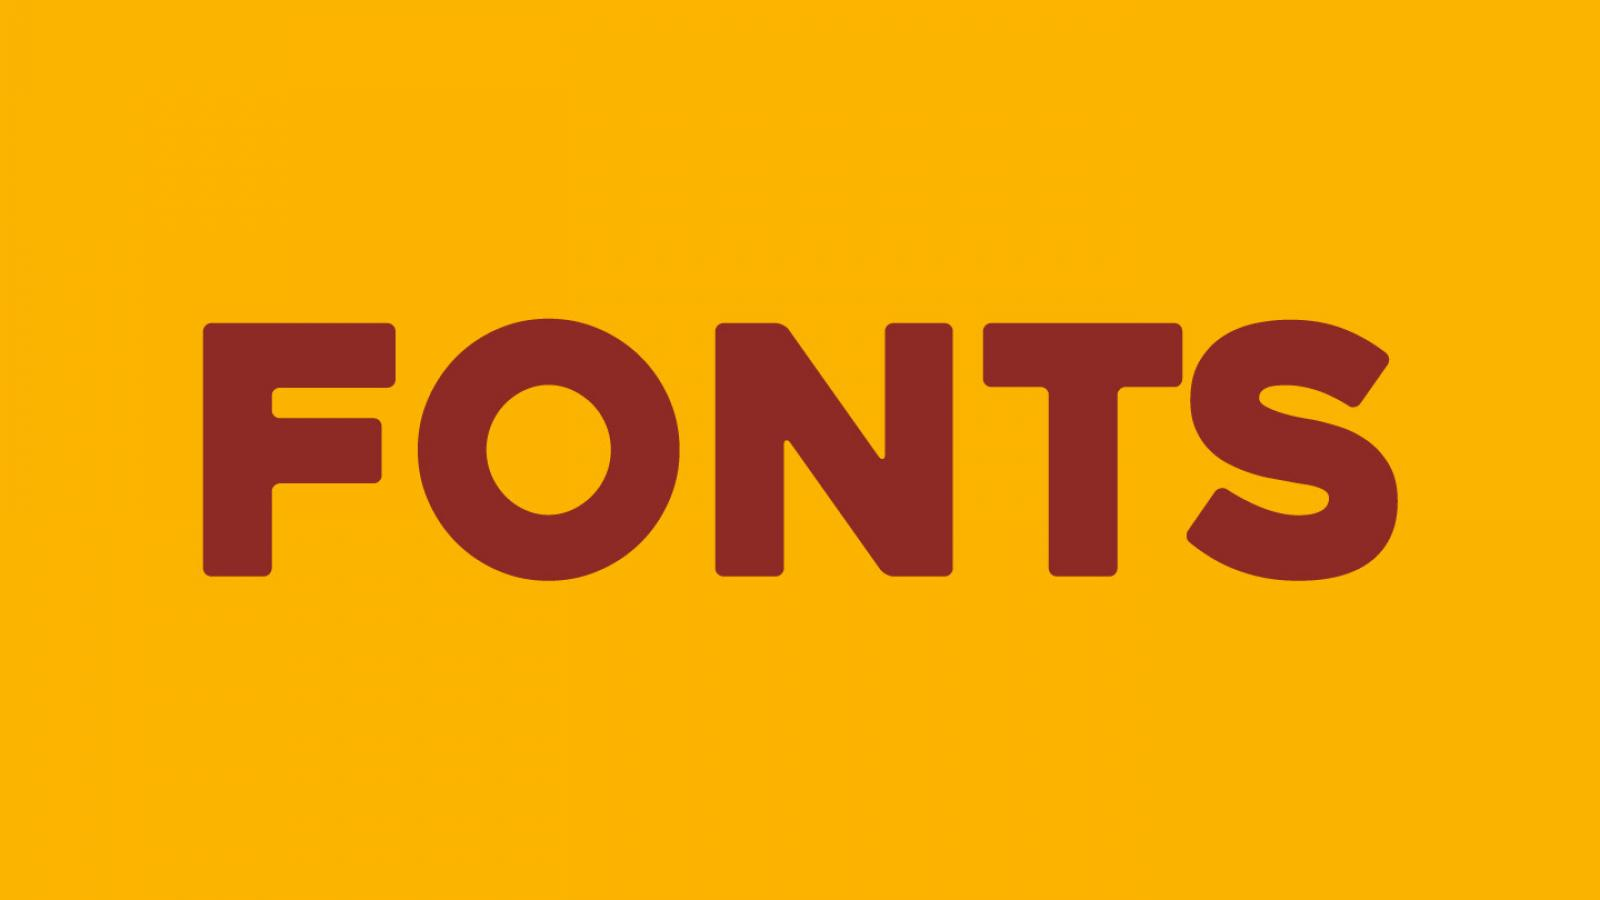 Friday Fresh Free Fonts - Red Velvet, Heavitas